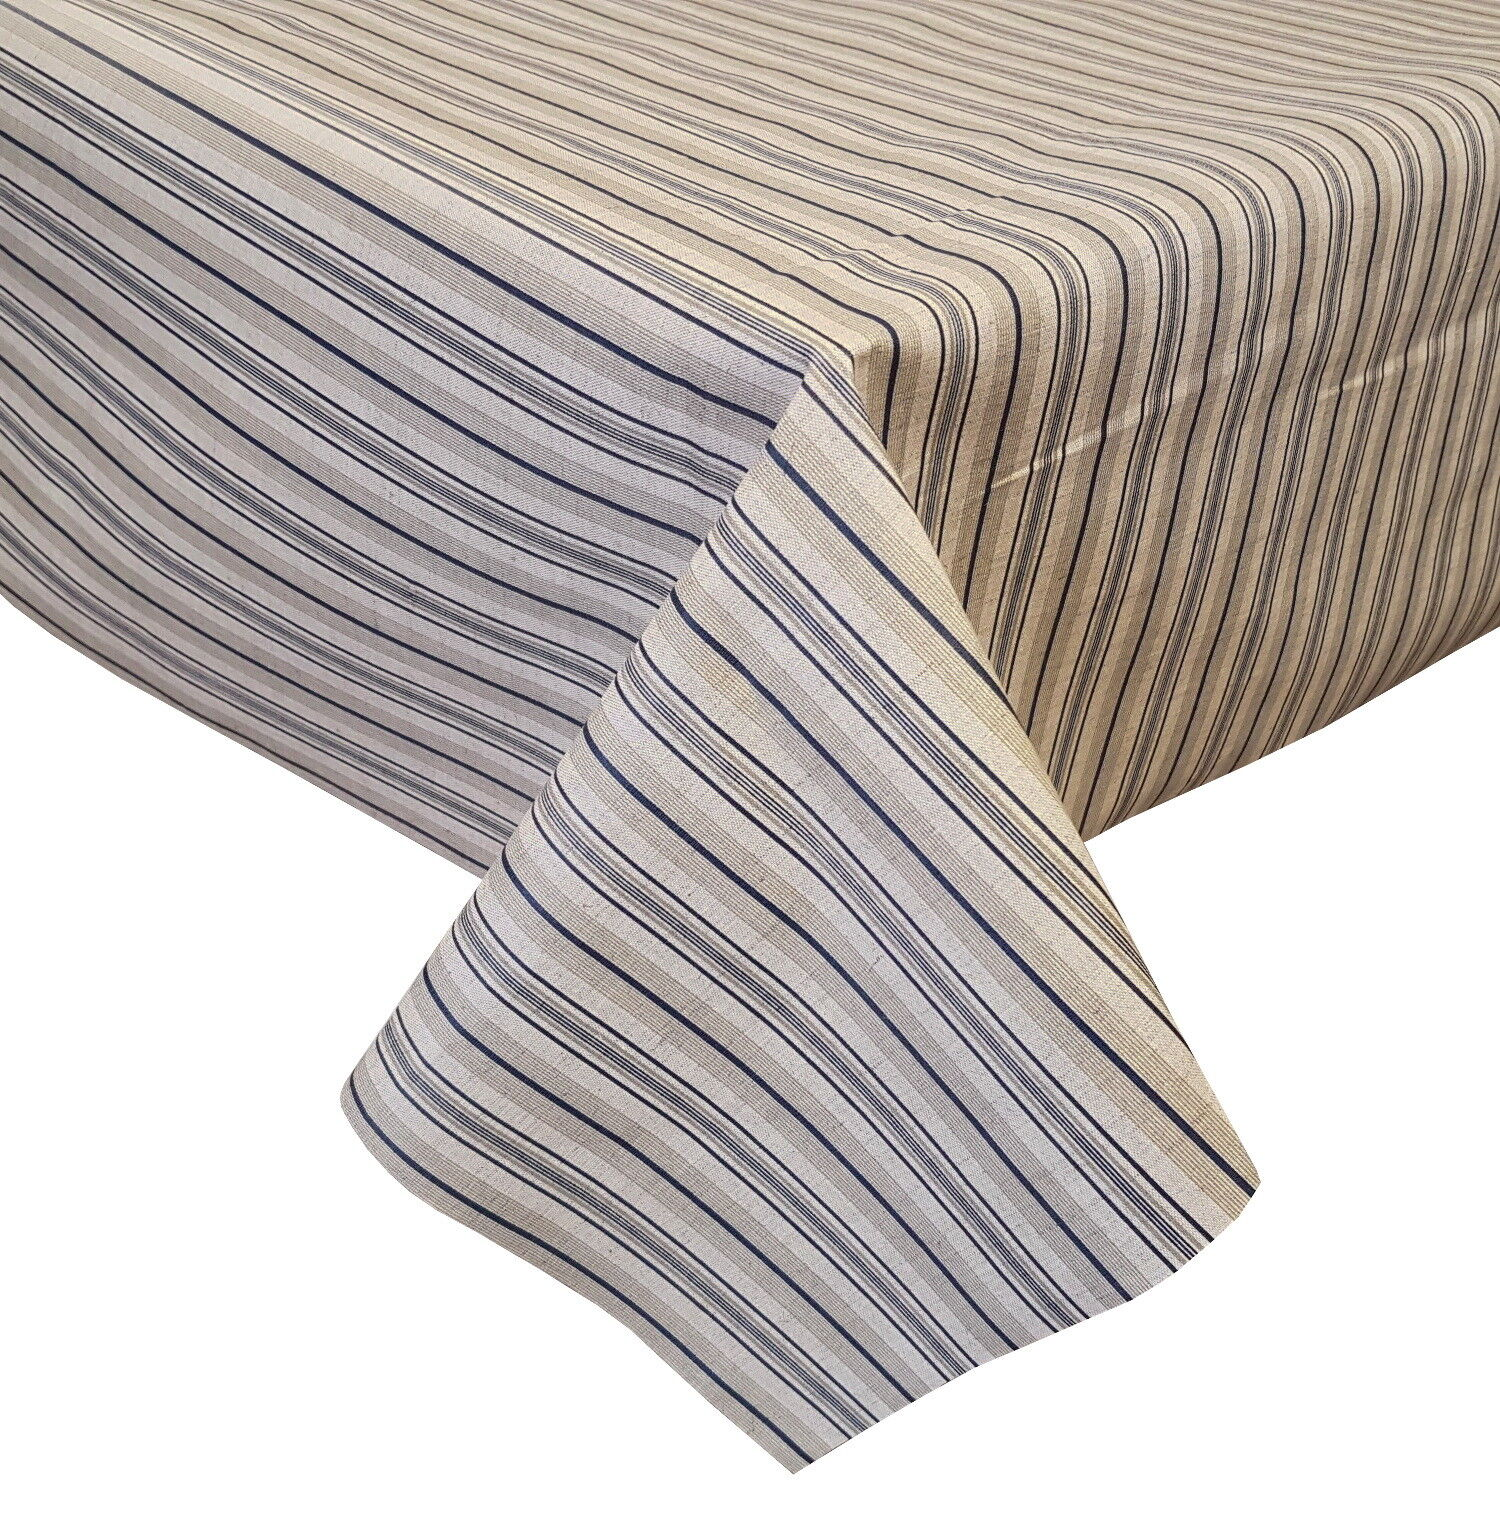 ACRYLIC COATED TABLE CLOTH TOILE STRIPES blueE LINES NAVY BEIGE NATURAL WIPE ABLE